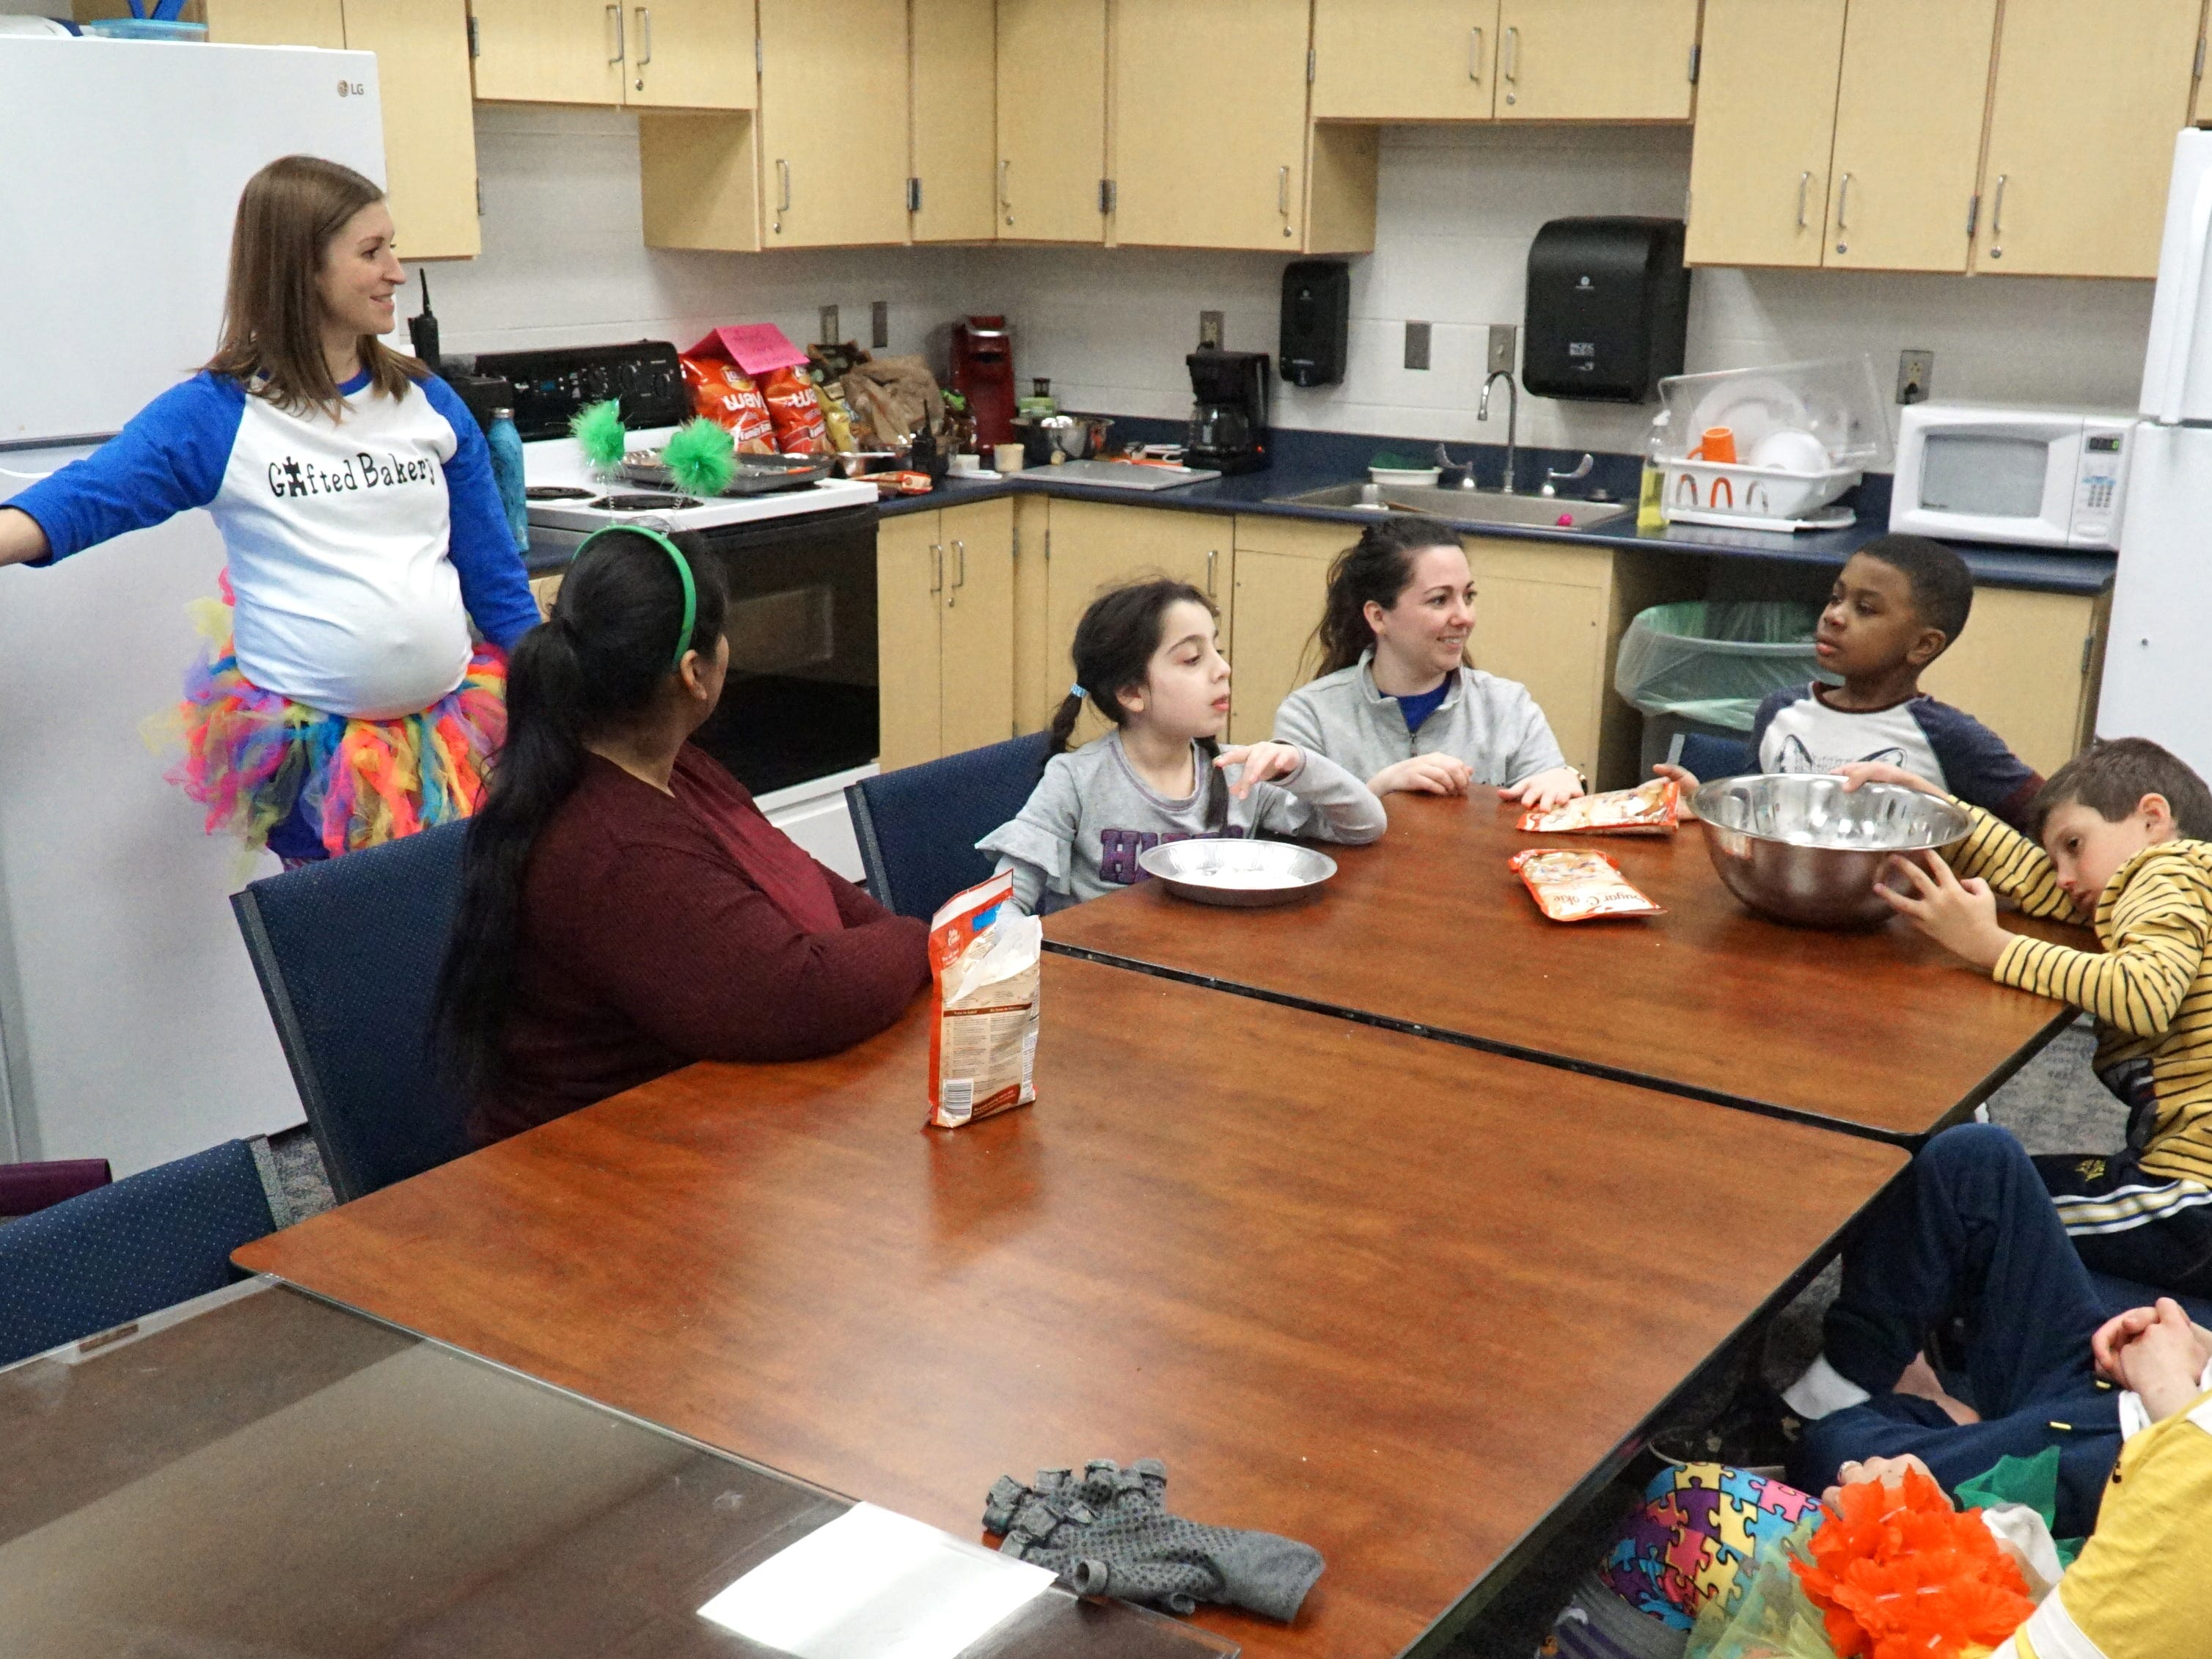 The Gifted Bakery program at Birmingham's Harlan Elementary prepares to make some chocolate and toffee chip cookies at the school on Feb. 28. From left are teachers Briona McKinney and Irna Singh, and student Grace Karim, teacher Victoria LaBush, and students Payce Jenkins and Christian Vuljaj.